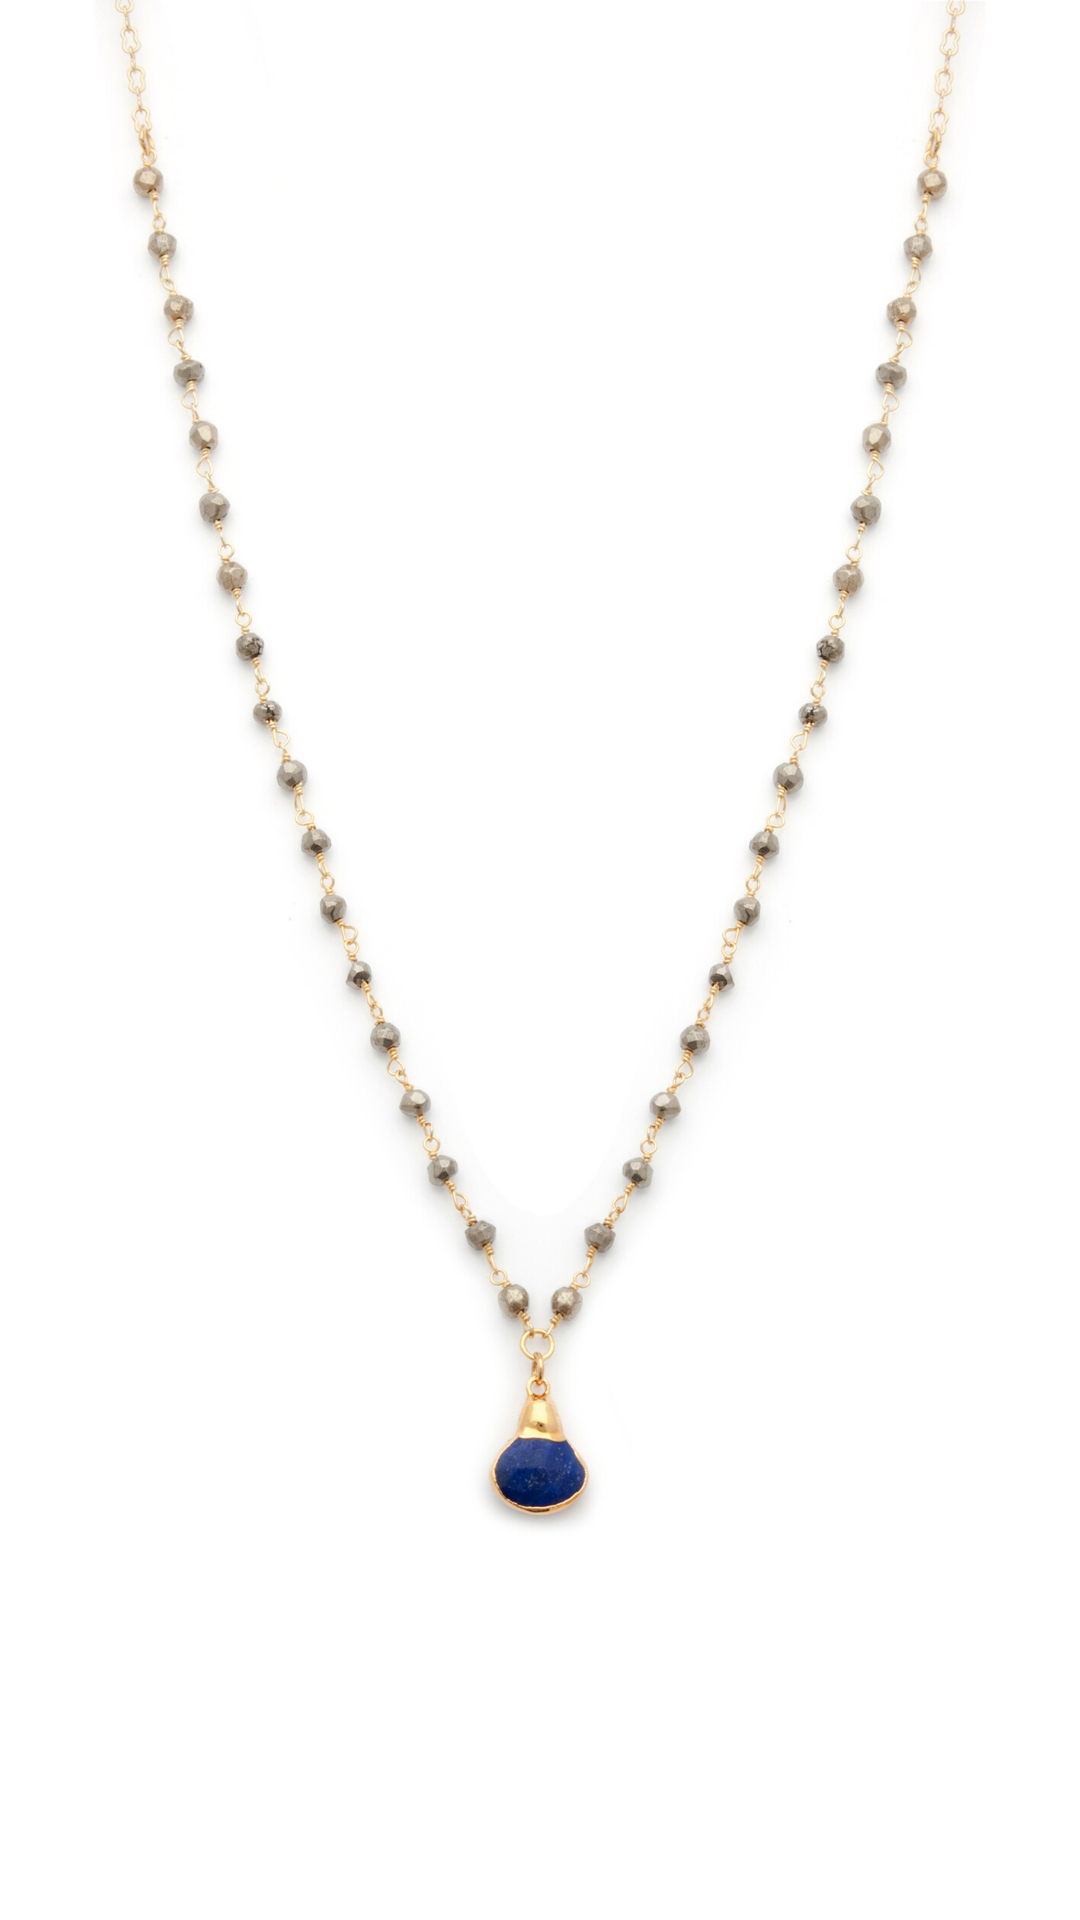 Lapis Lazuli and Pyrite Gold Filled Necklace - Irit Sorokin Designs Canadian handmade jewelry